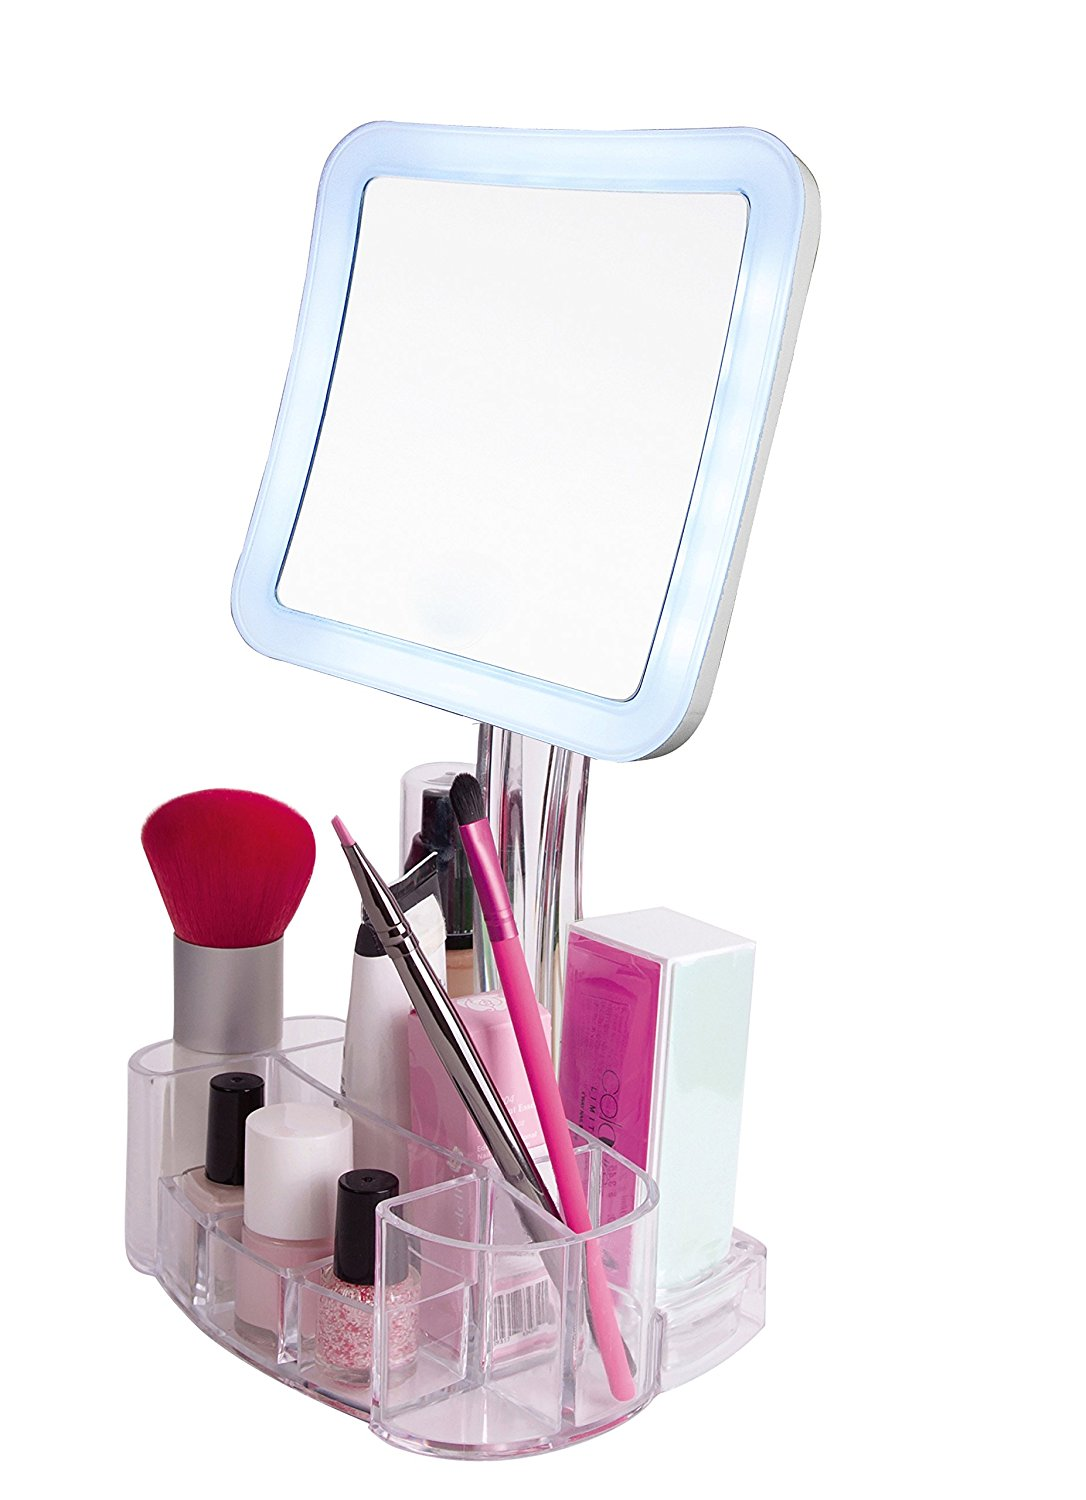 Illuminated Mirrors | Best Lighted Makeup Mirror | Bedroom Vanity with Lighted Mirror